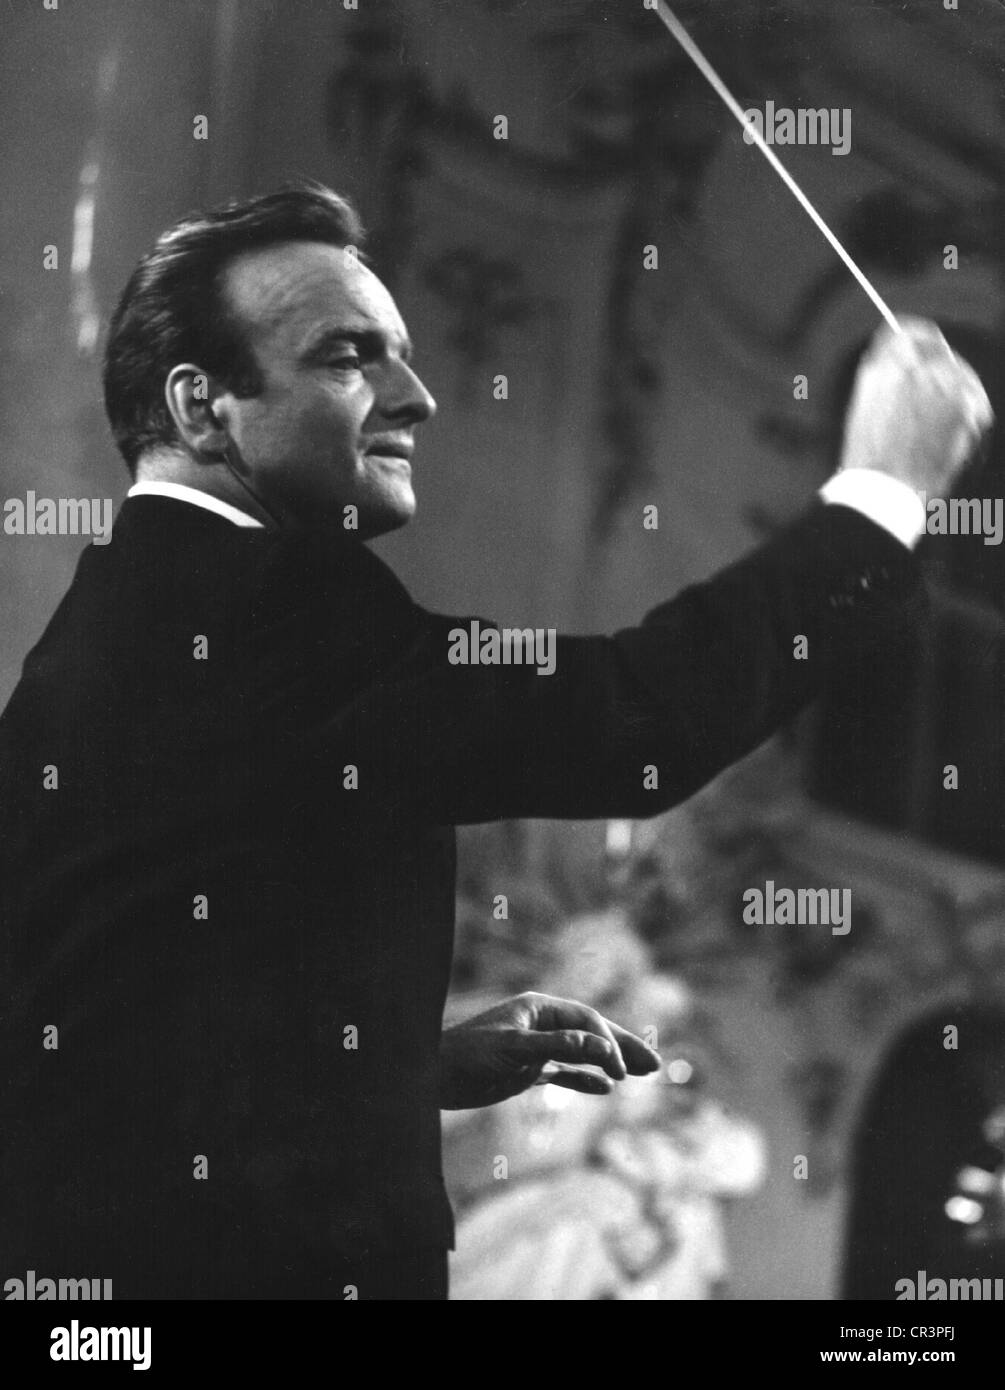 Richter Karl 15.10.1926 - 15.2.1981, German organist, conductor, half length, conducting, during a concert, 1960s, Stock Photo